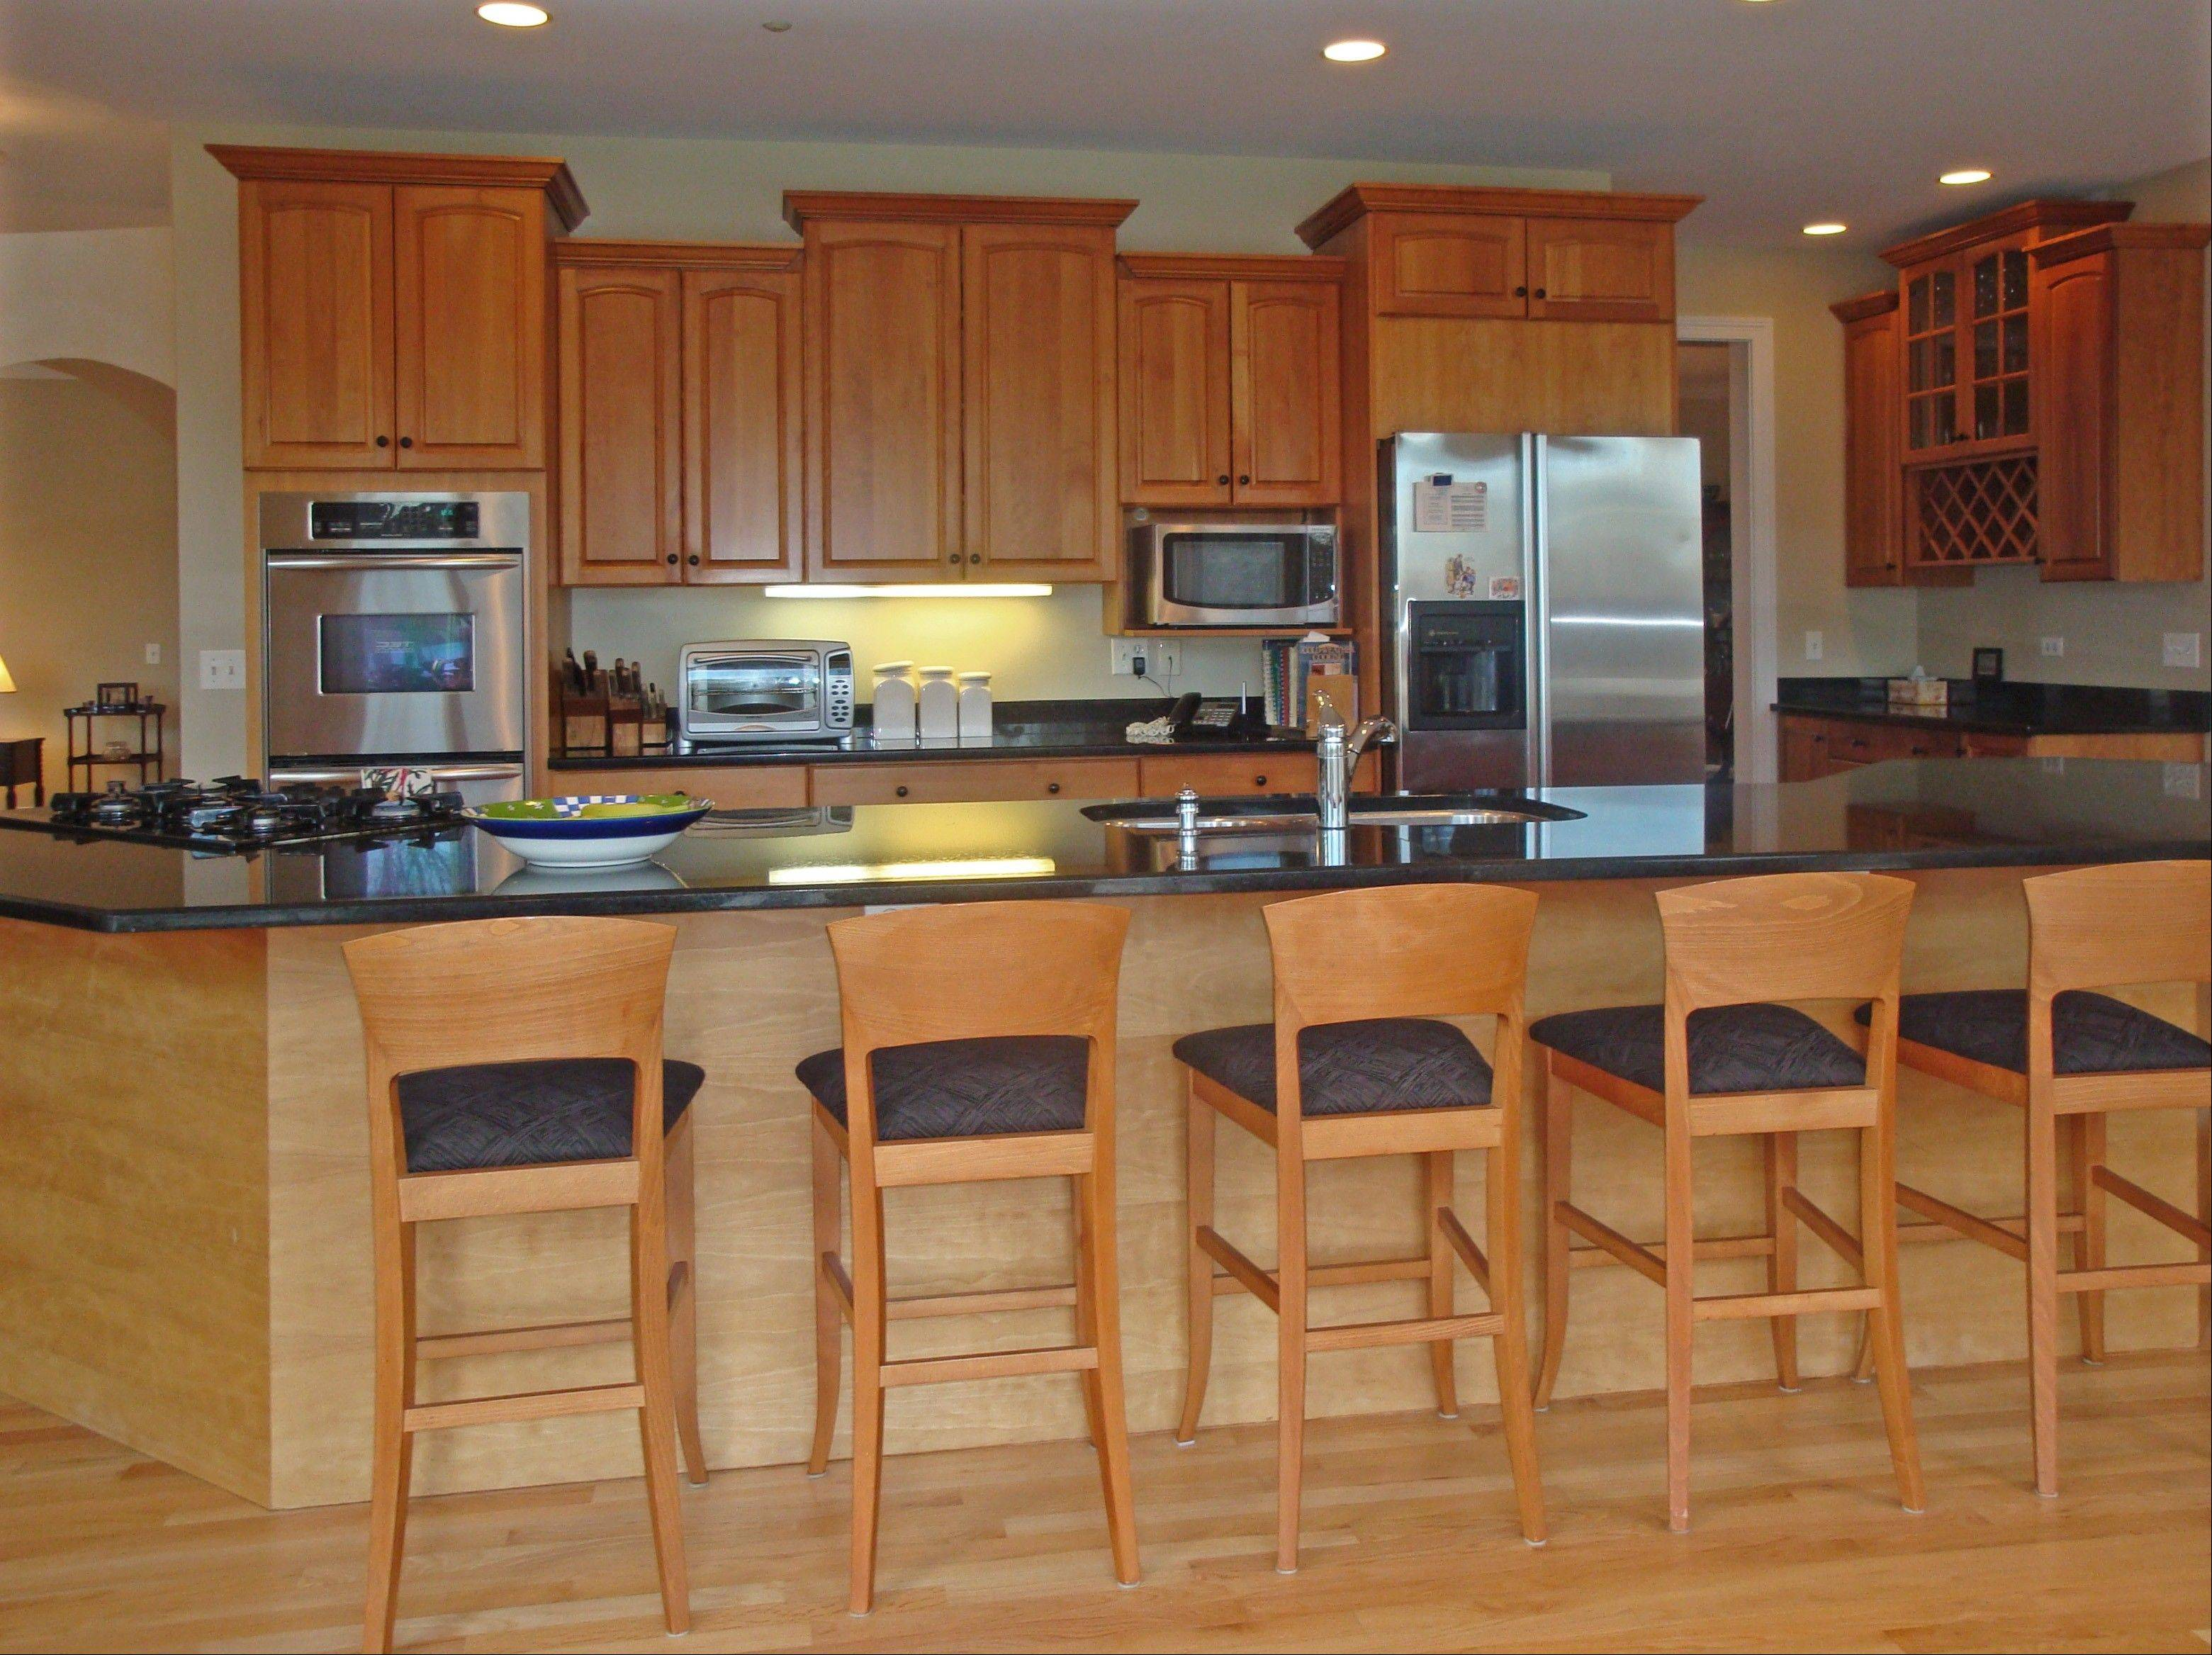 The house features a cherry kitchen with granite countertops.